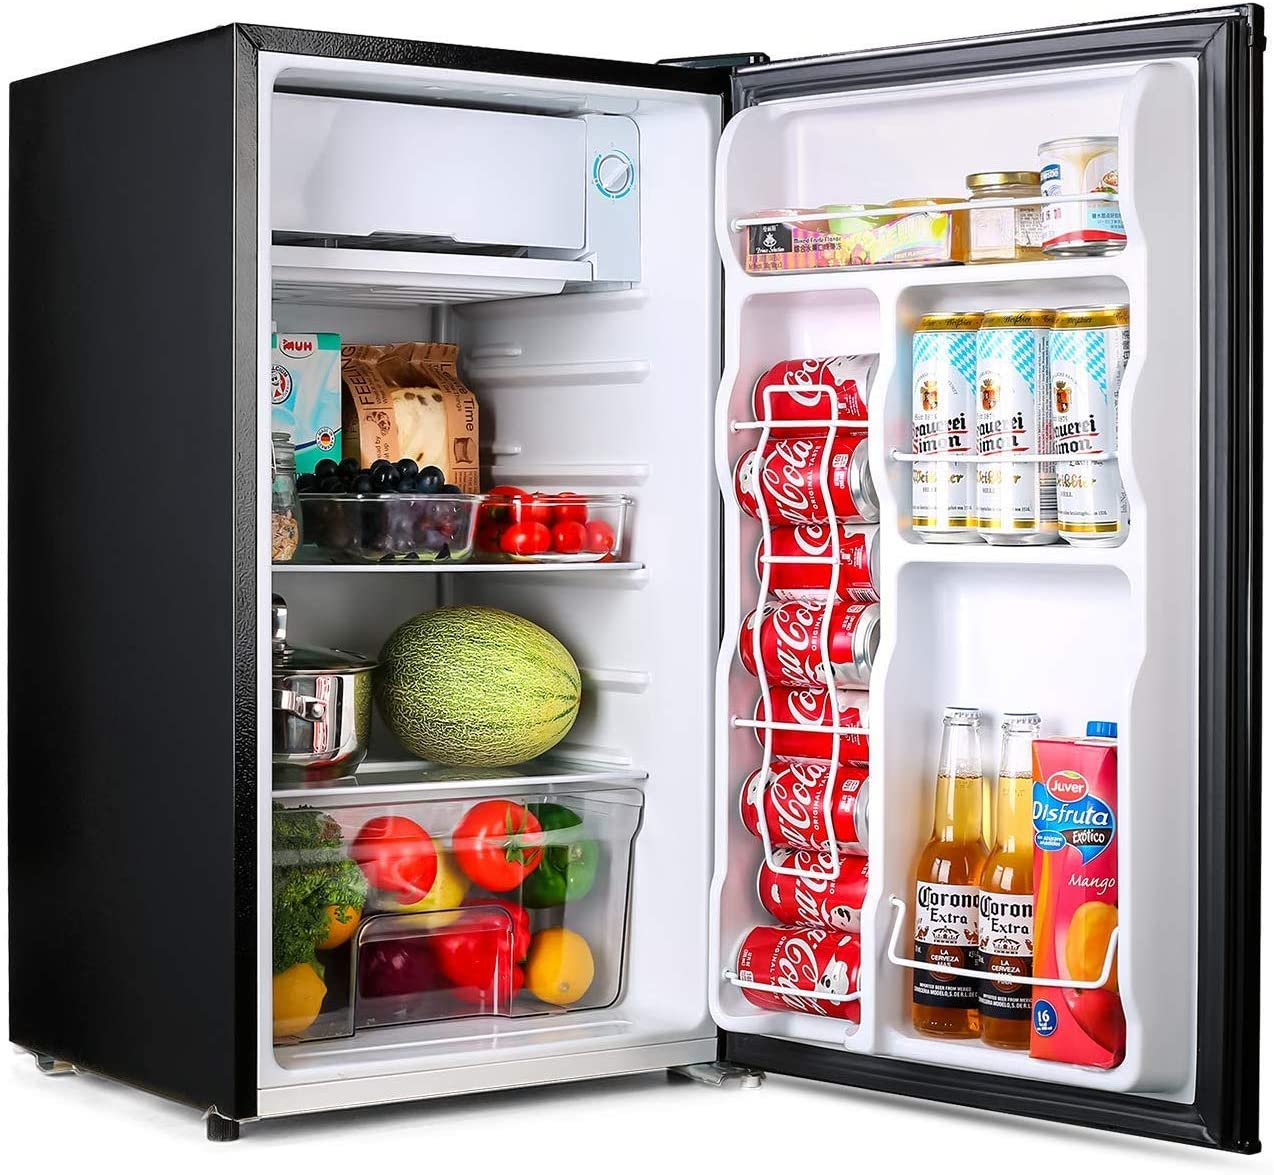 TACKLIFE Compact Refrigerator, 3.2 Cu Ft Mini Fridge with Freezer, Energy Star Rating, Low noise, for Bedroom Office or Dorm with Adjustable Temperature, Removable Glass Shelves- MPBFR321: Appliances